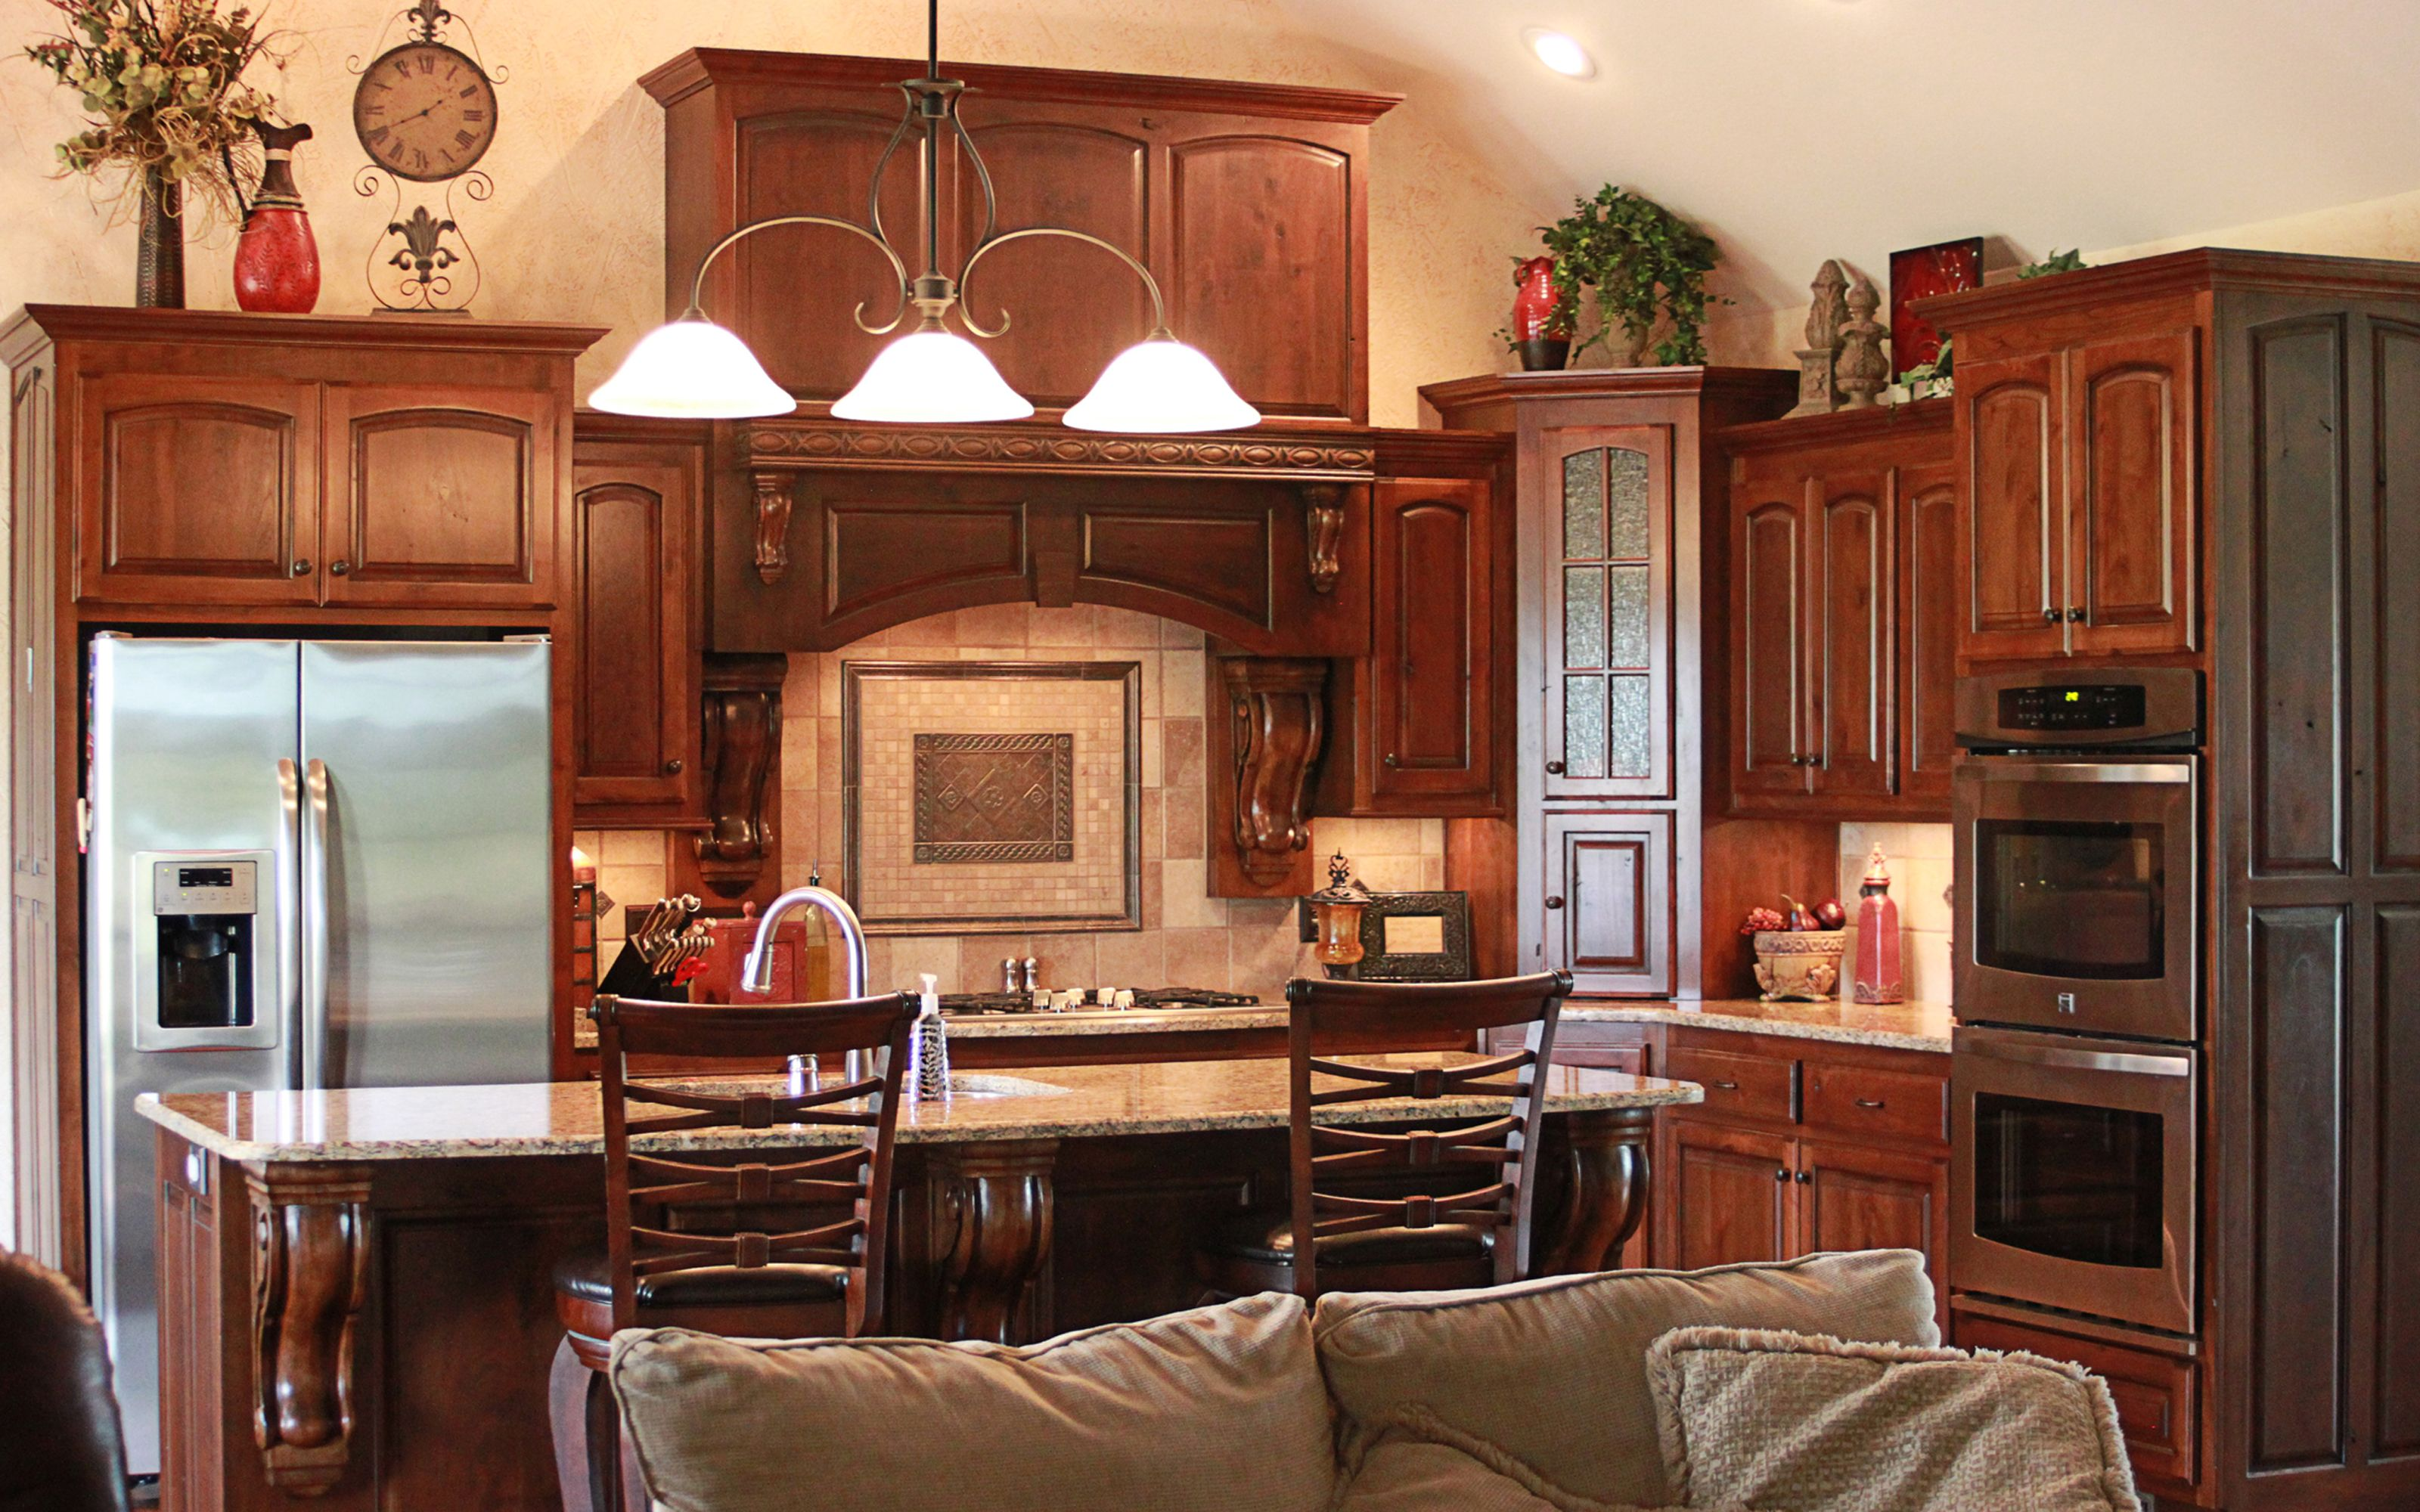 Pin By Cabinets Plus On Rustic Cherry Cabinets Rustic Cherry Cabinets Kitchen Cabinets Granite Cherry Kitchen